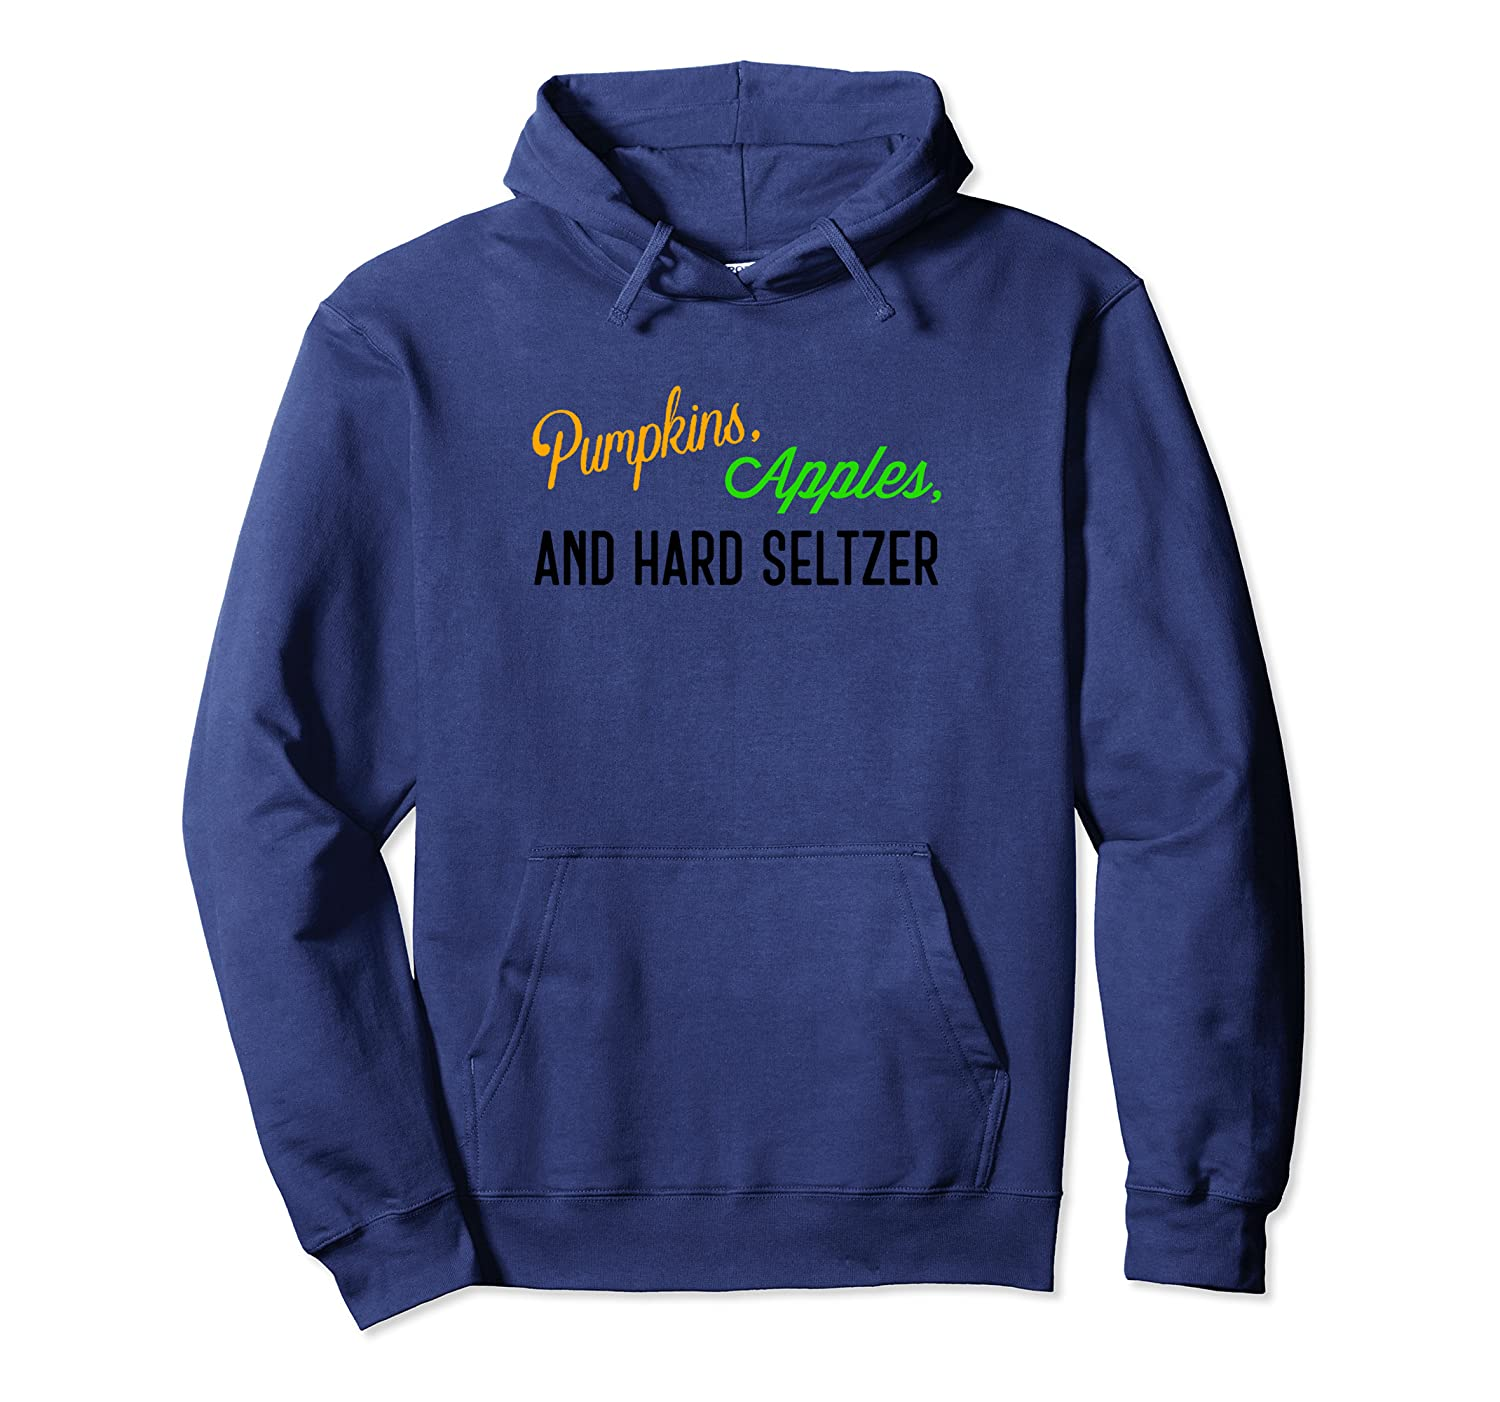 Pumpkins, Apples And Hard Seltzer's Shirts Unisex Pullover Hoodie